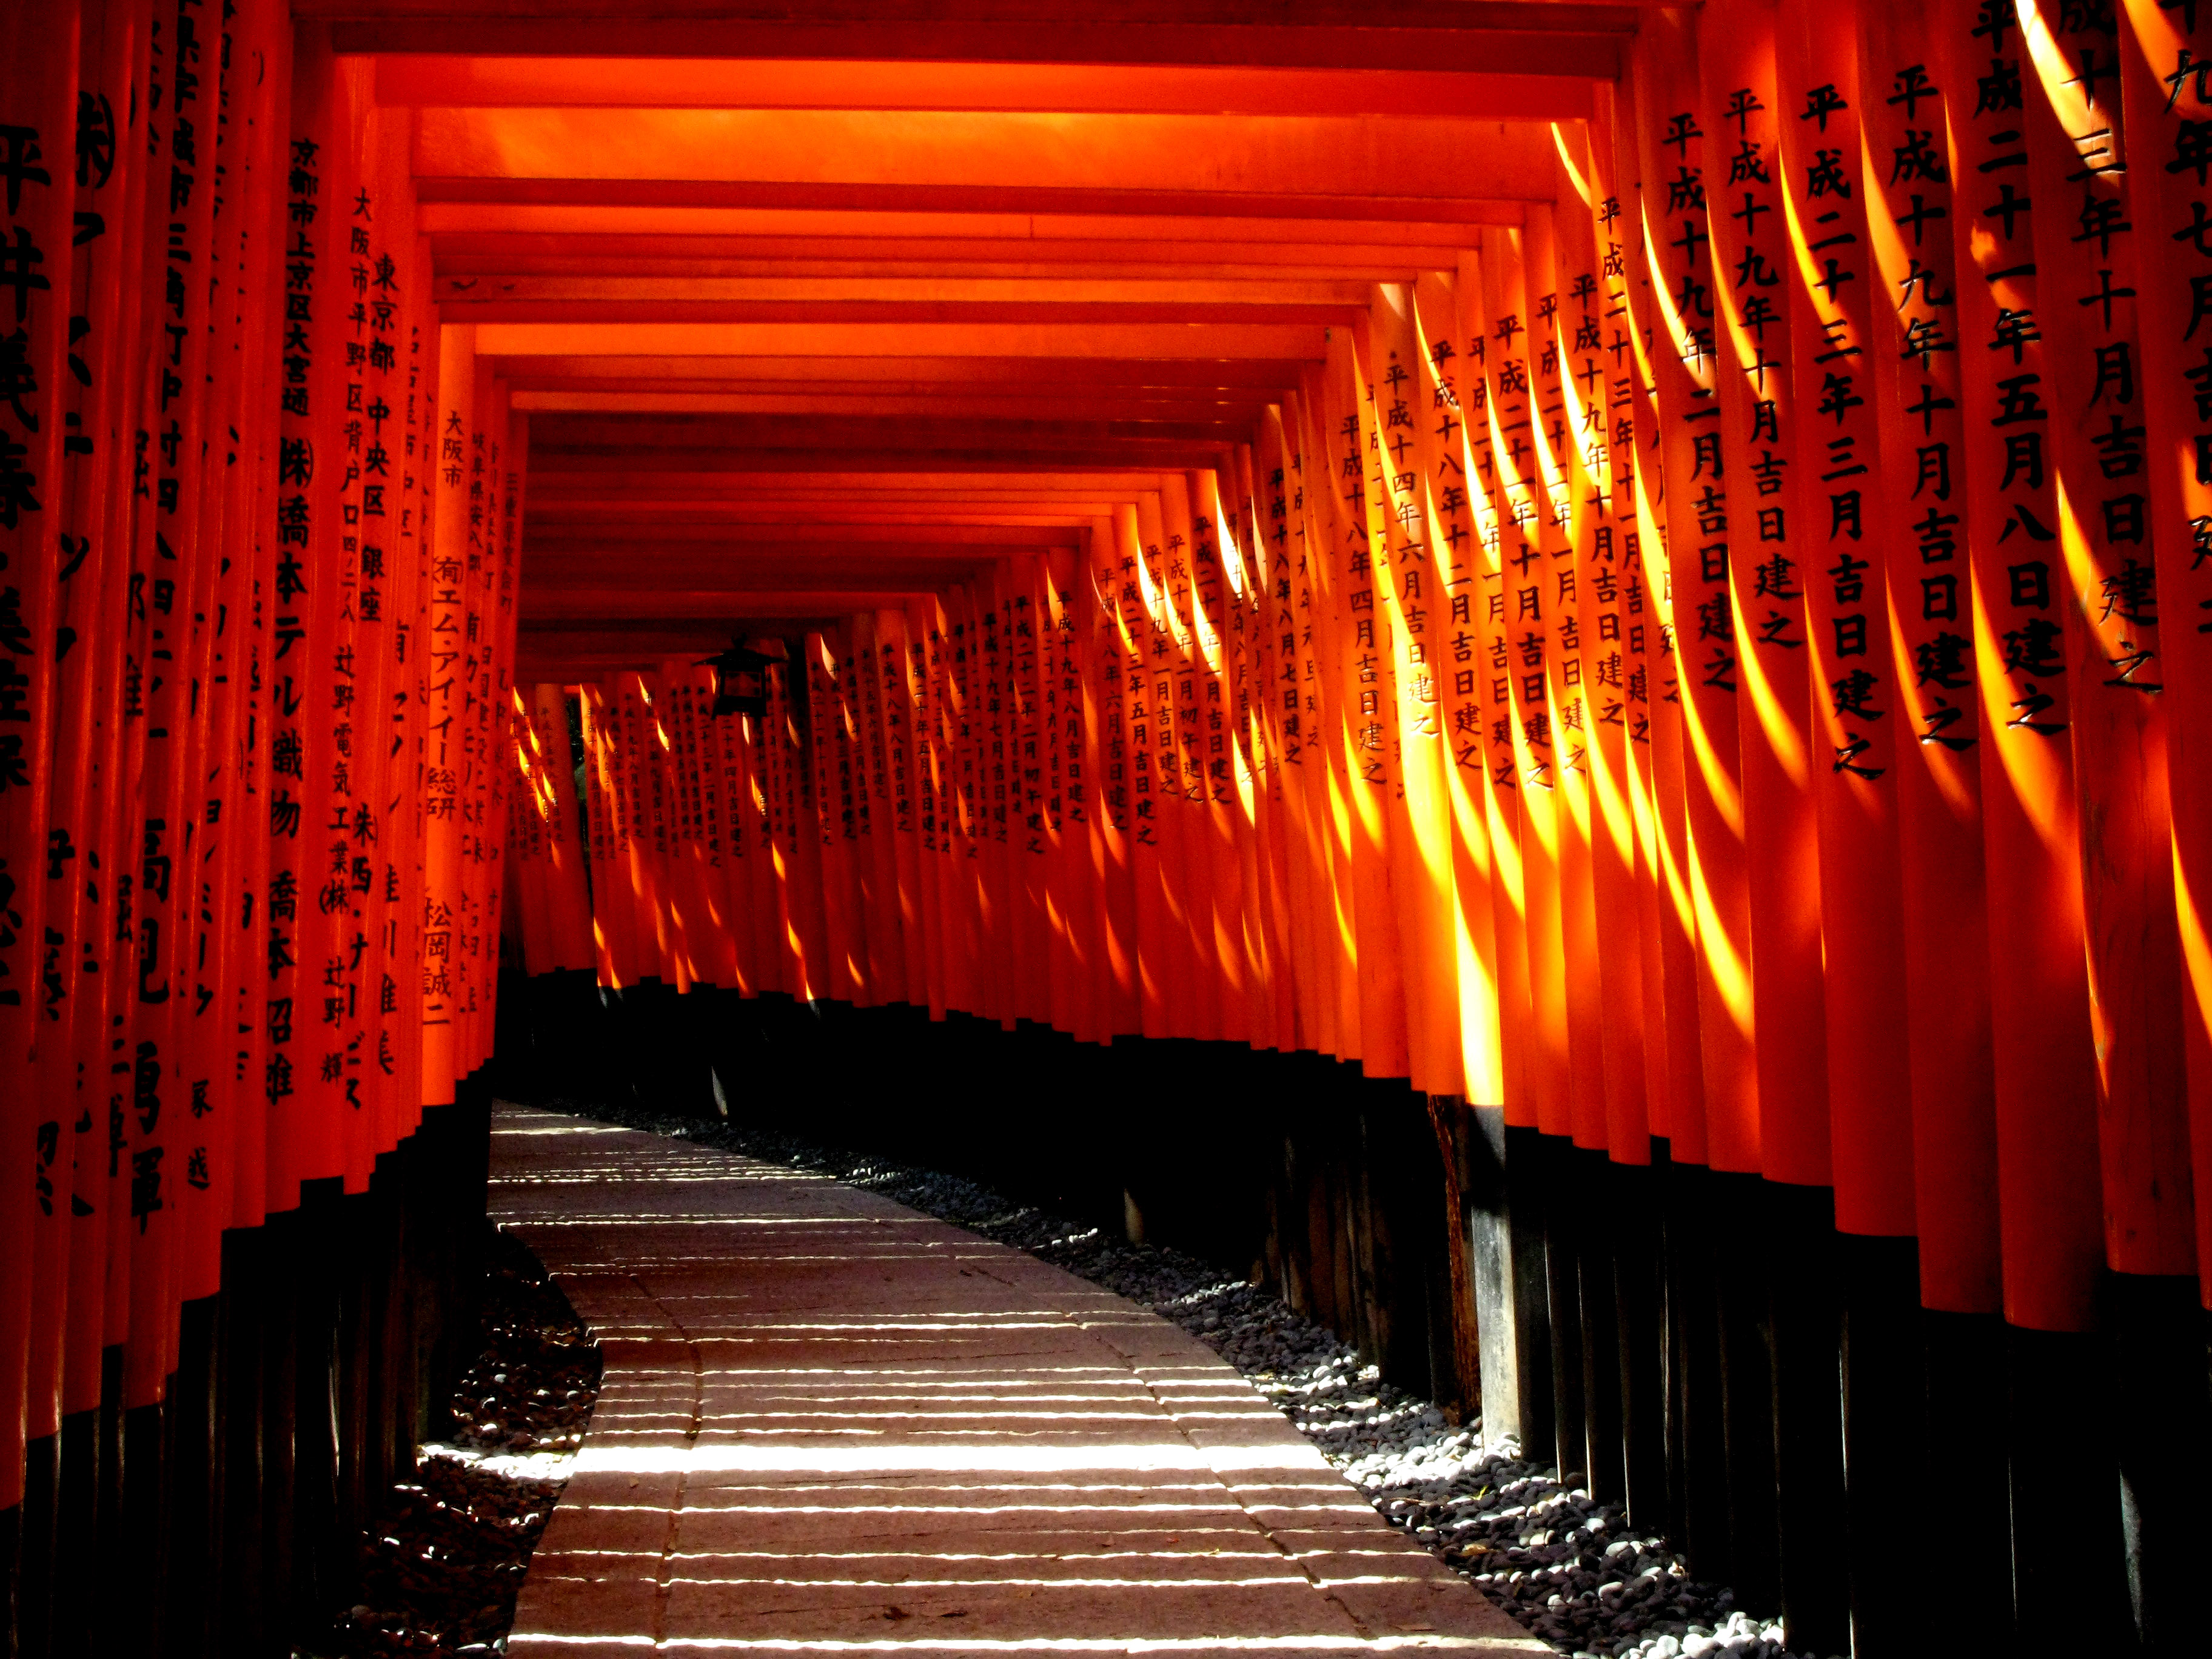 from https://commons.wikimedia.org/wiki/File:Fushimi_Inari-taisha_sembon-torii.jpg copyright M338